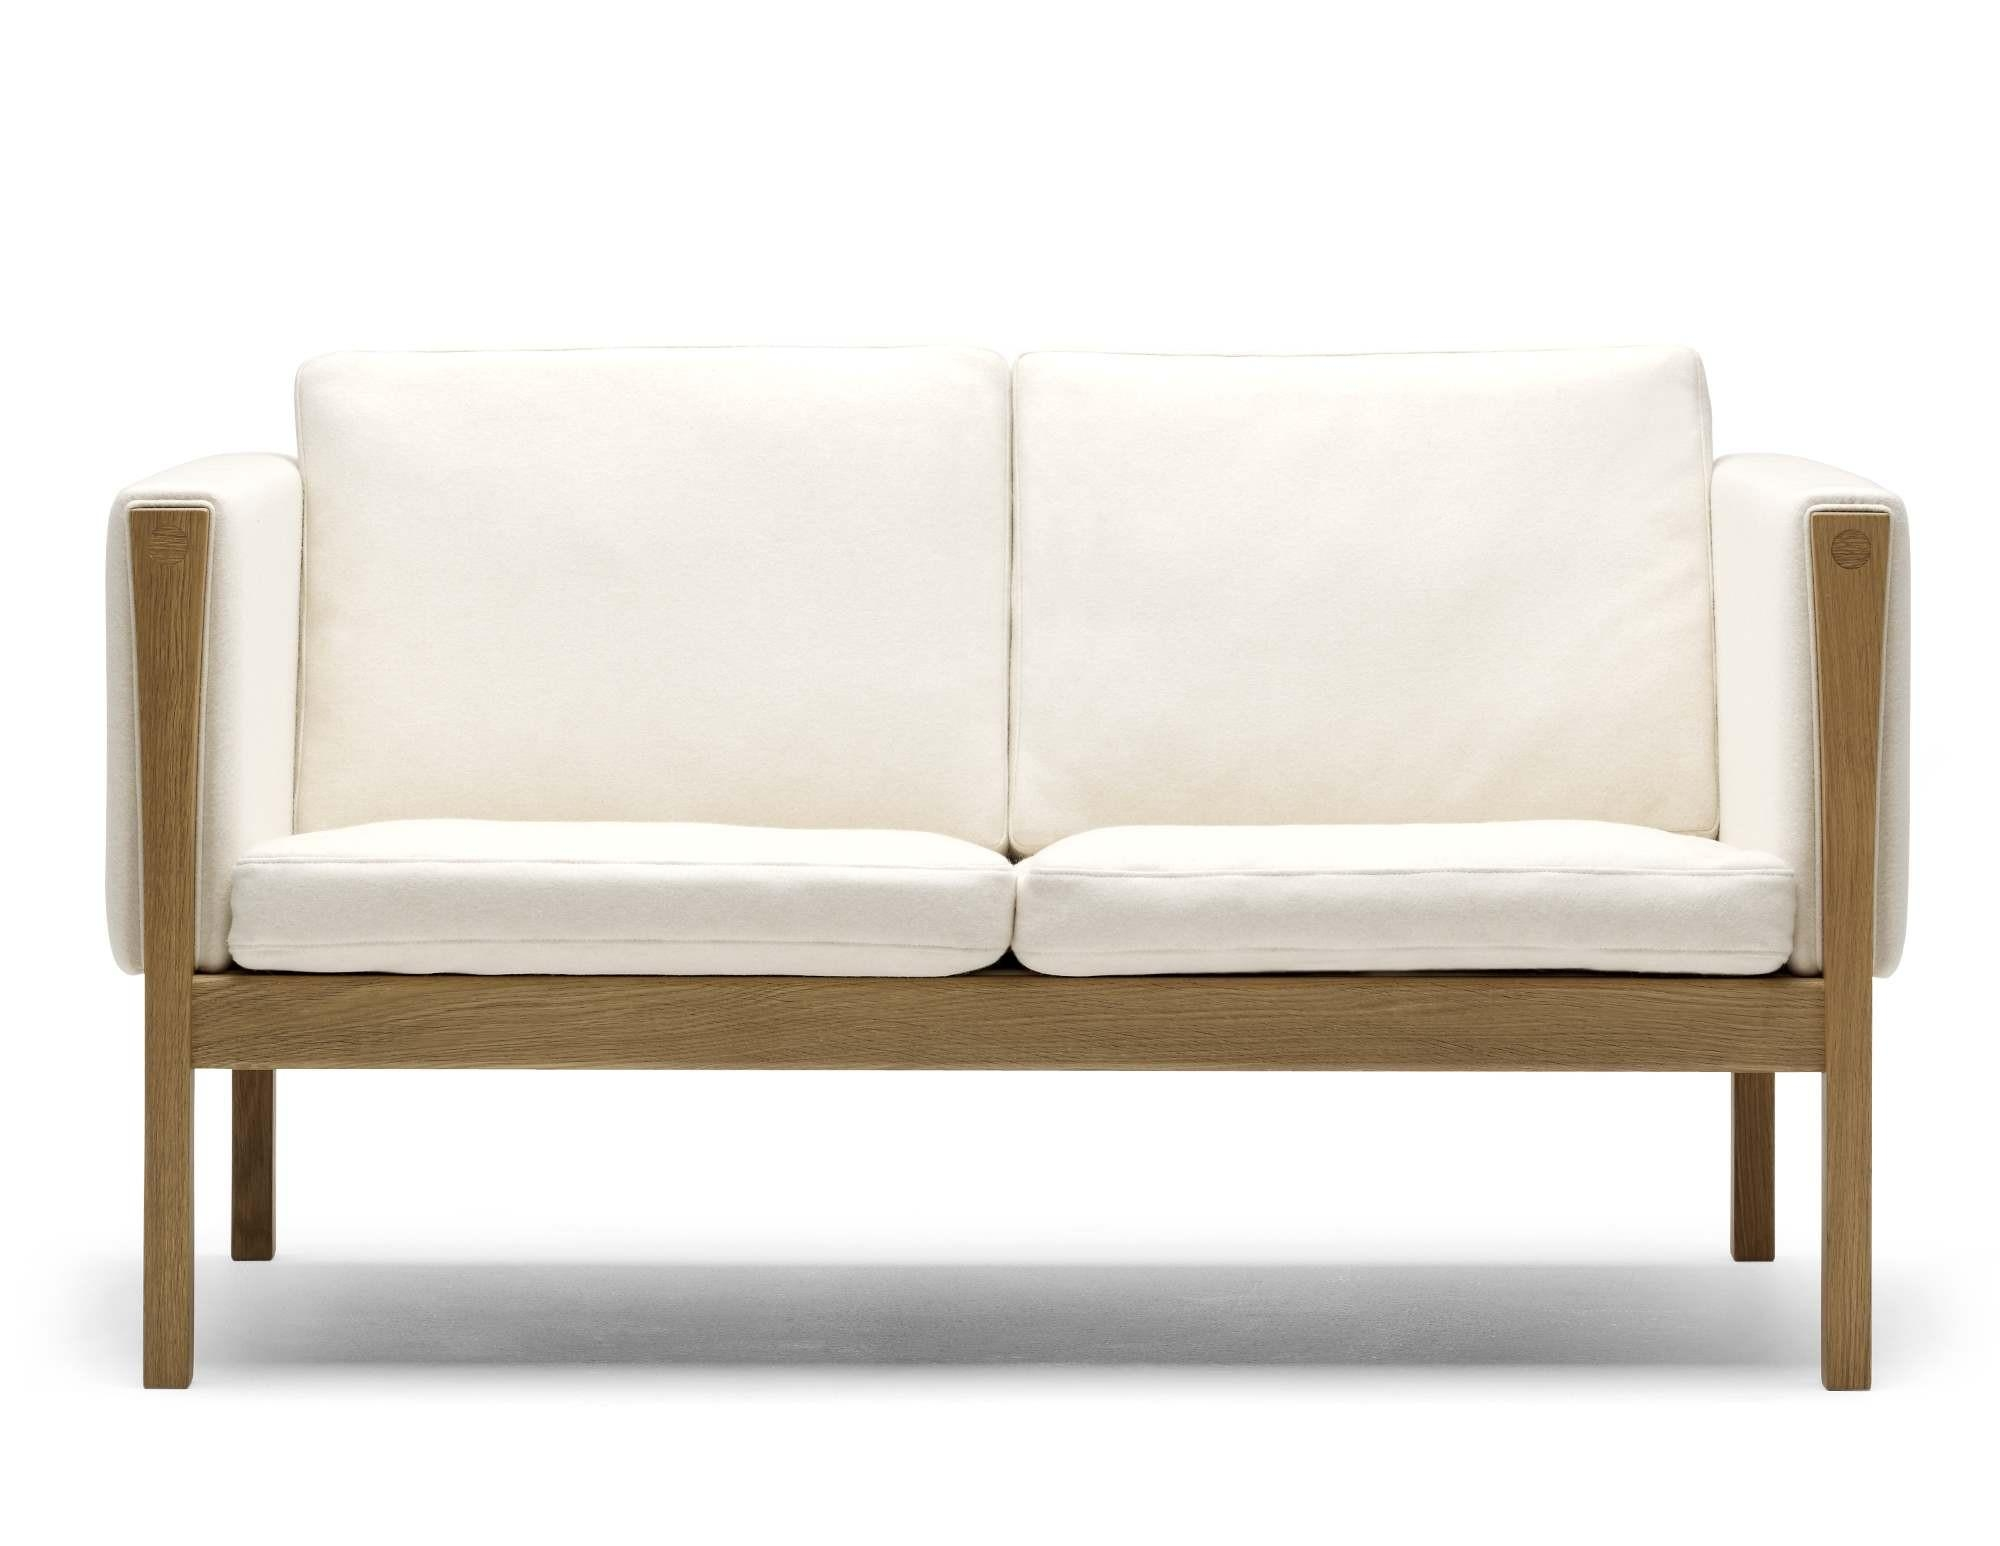 Sofas Center : 51 Stupendous Small 2 Seater Sofa Image Concept 2 With Regard To Small 2 Seater Sofas (View 6 of 20)